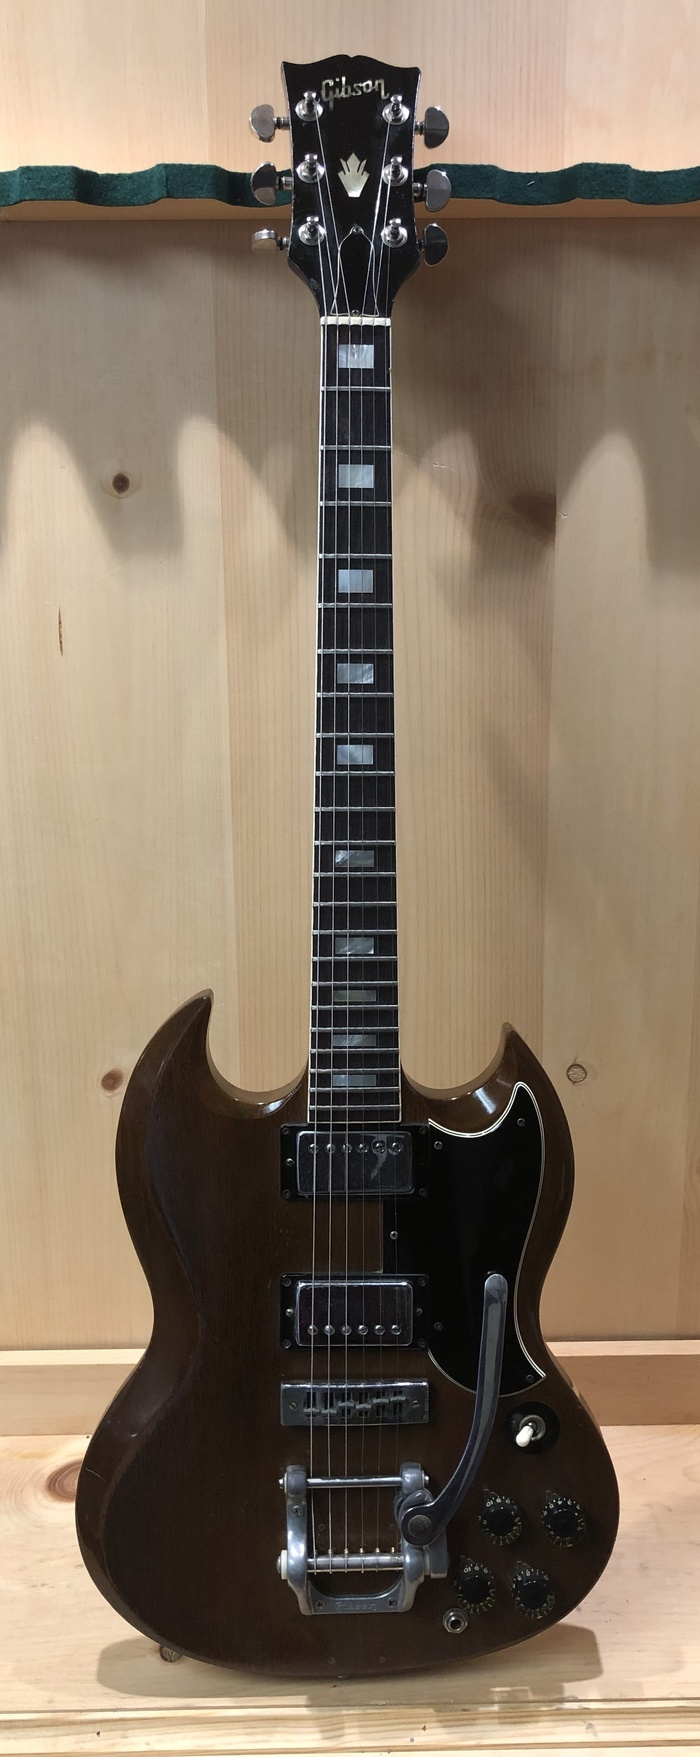 1972 GIBSON SG DELUXE ELECTRIC GUITAR